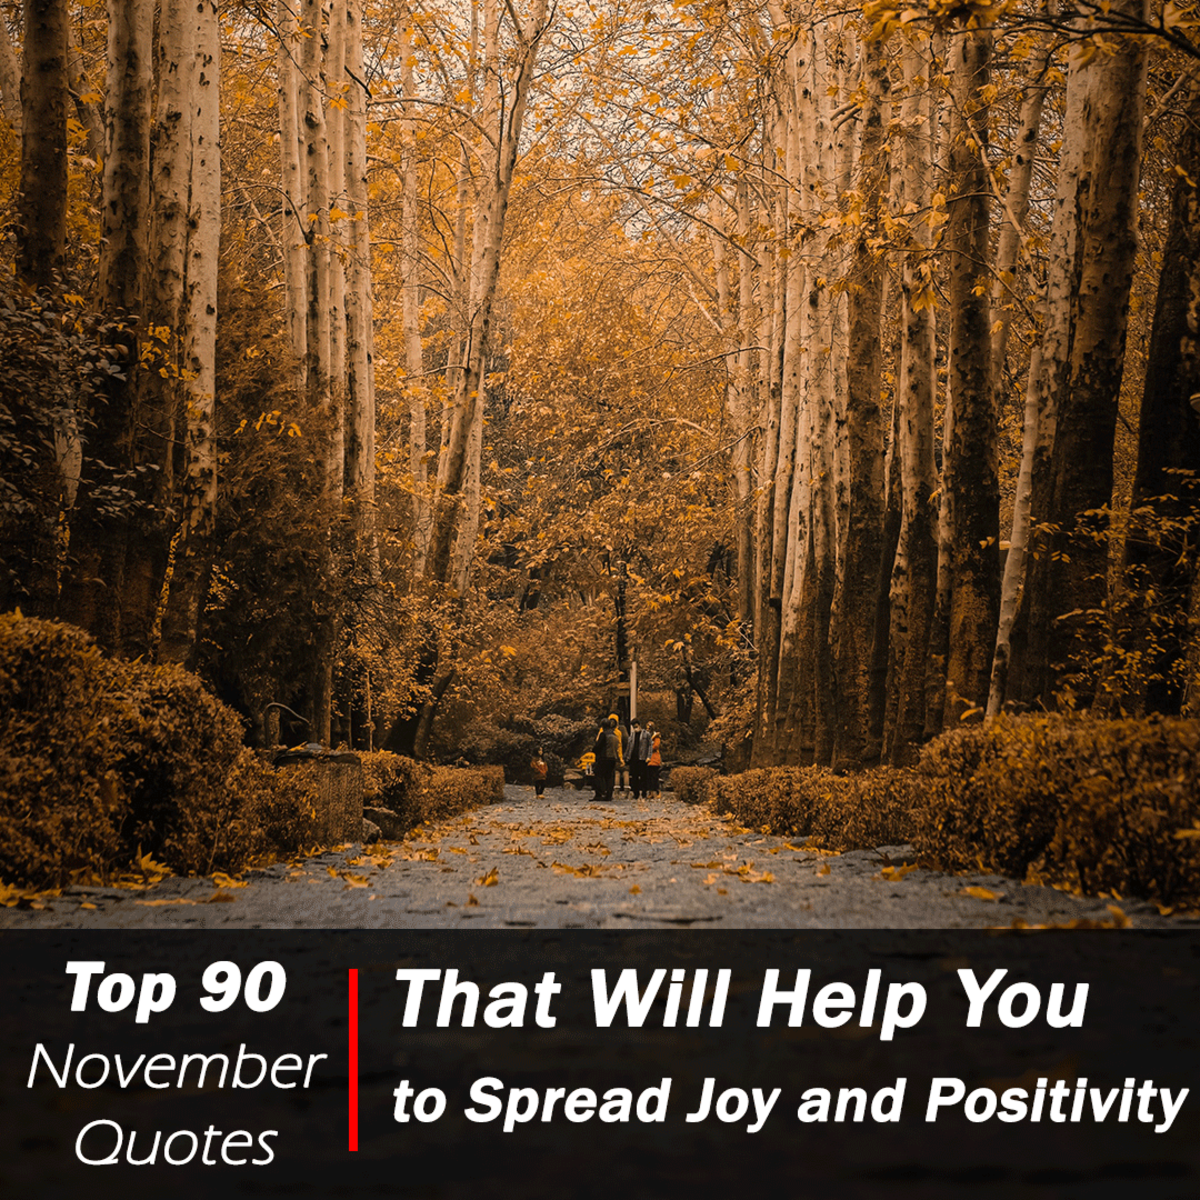 Top 90 November Quotes That Will Help You to Spread Joy and Positivity